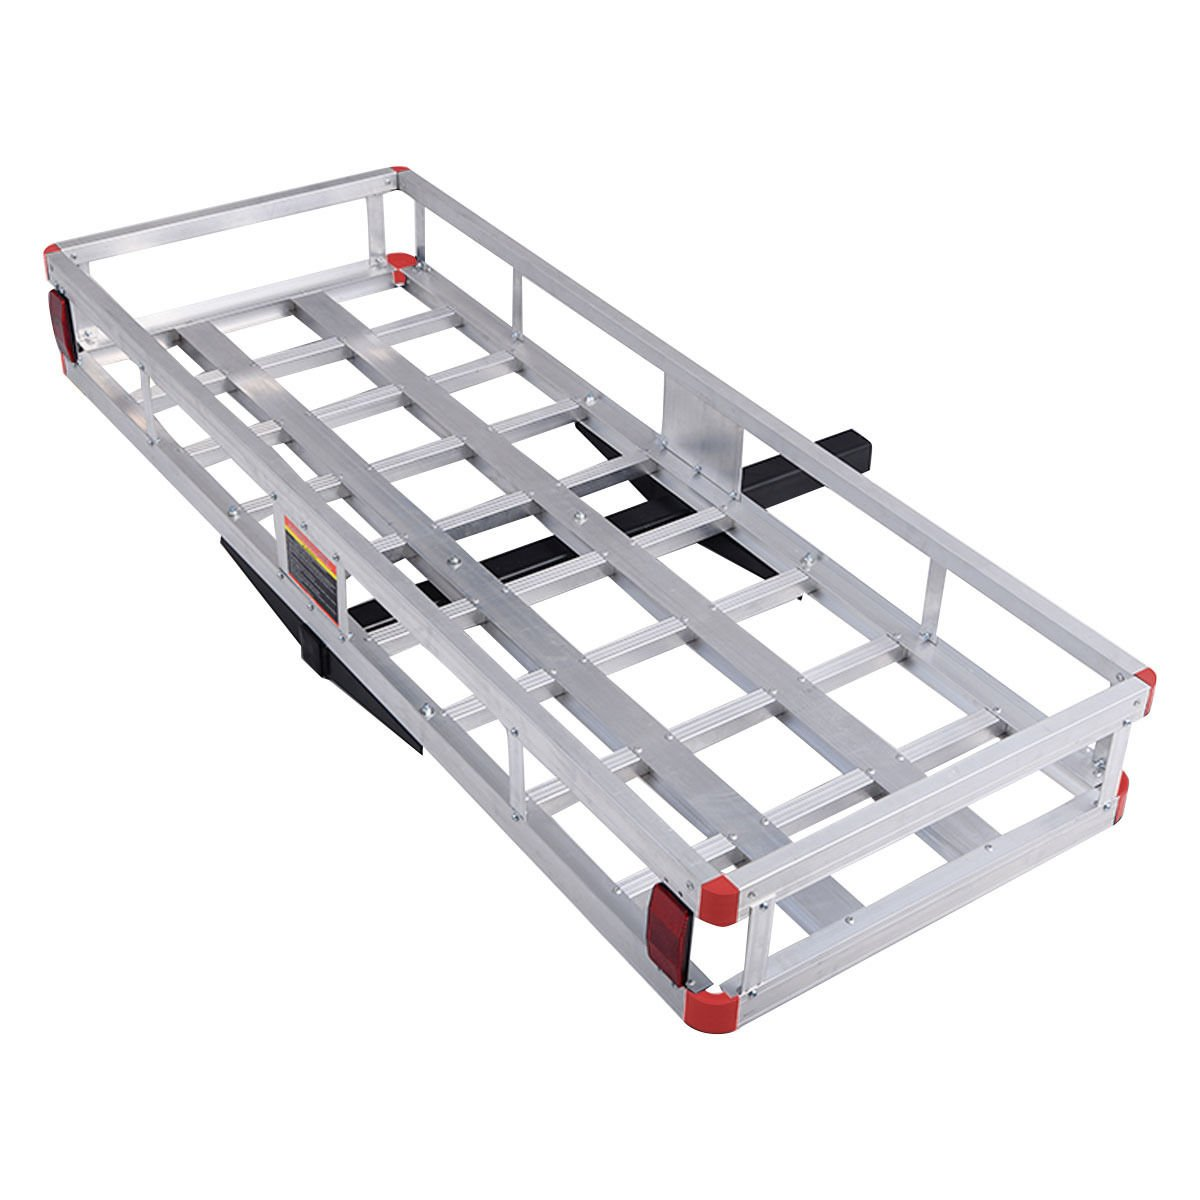 Goplus 60'' x 22'' Aluminum Hitch Mount Cargo Carrier Luggage Basket Rack for SUV, Truck, Car, 500LBS by Goplus